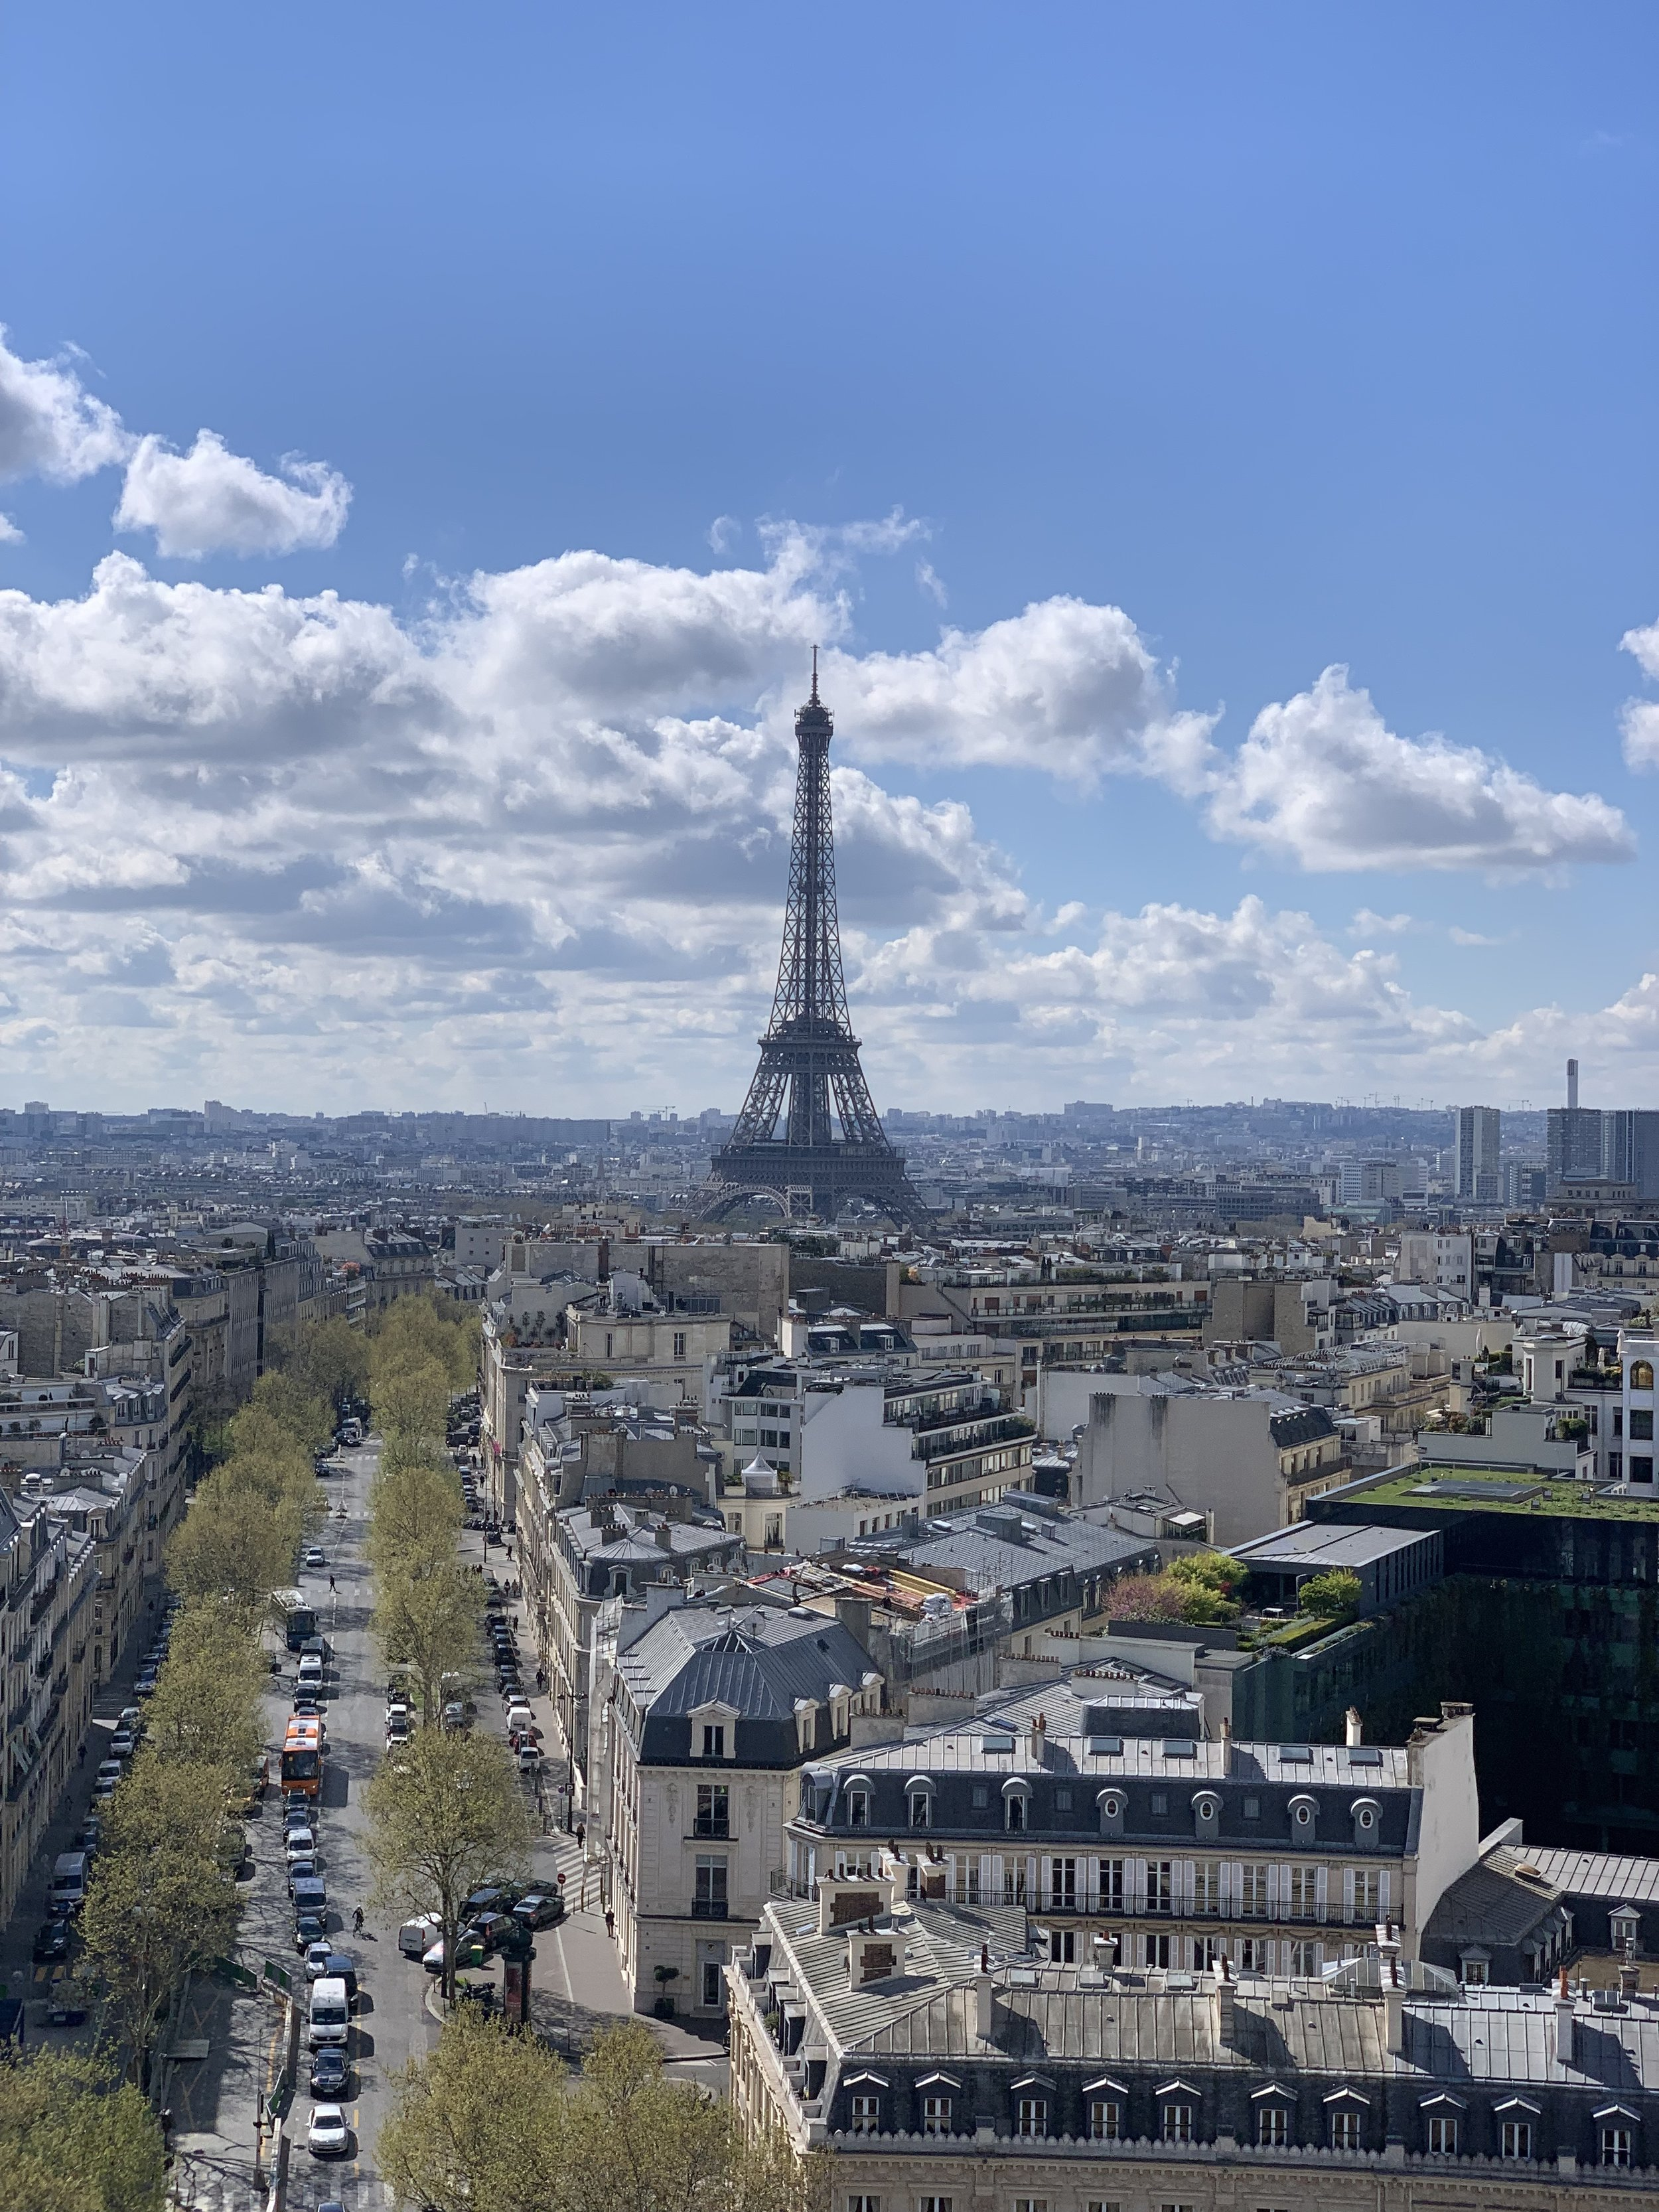 View of the Eiffel Tower, from the top of the Arc De Triomphe